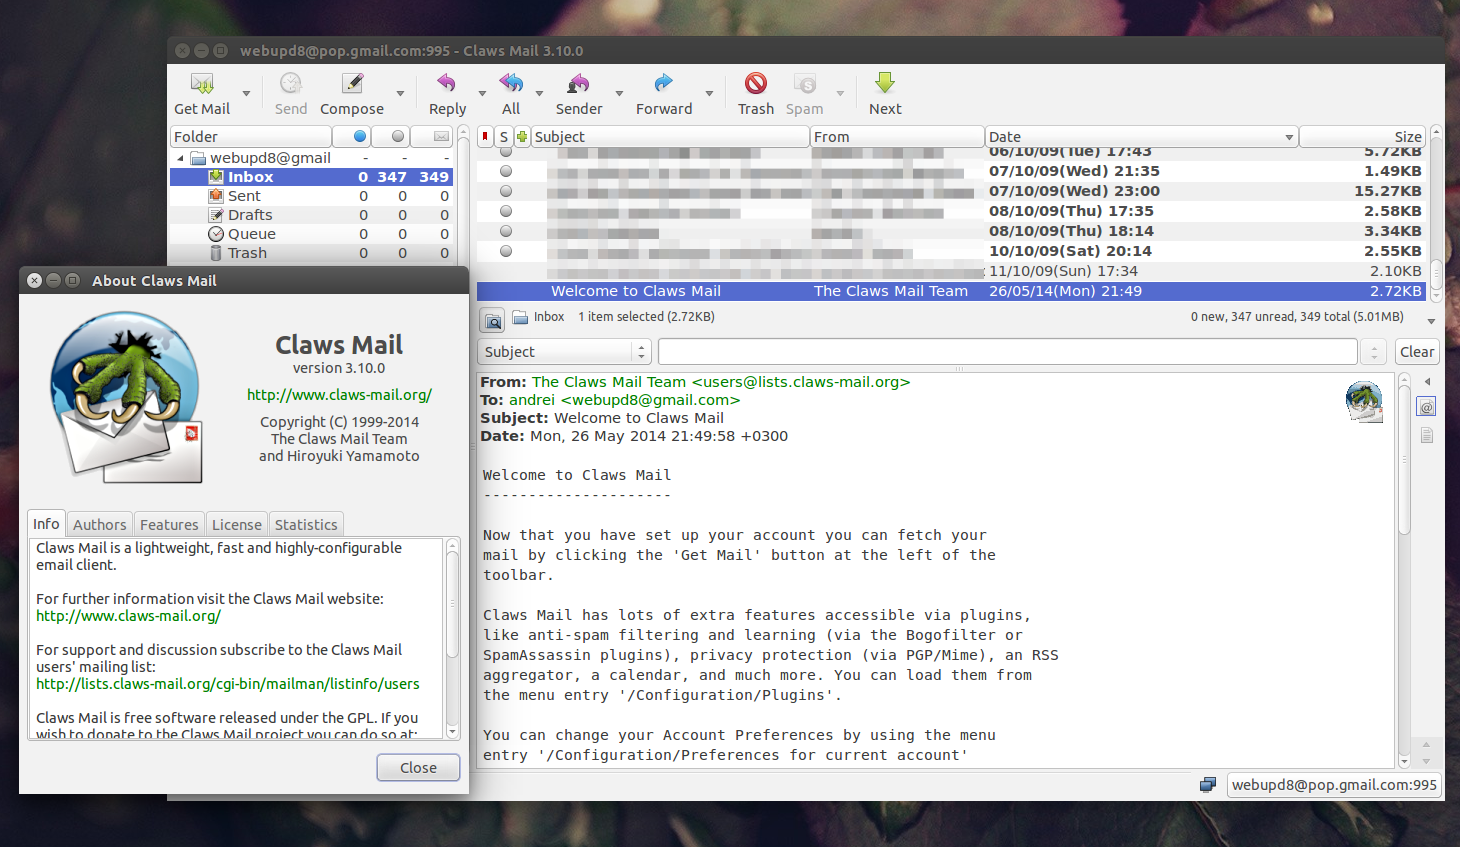 Claws Mail 3.10 Ubuntu